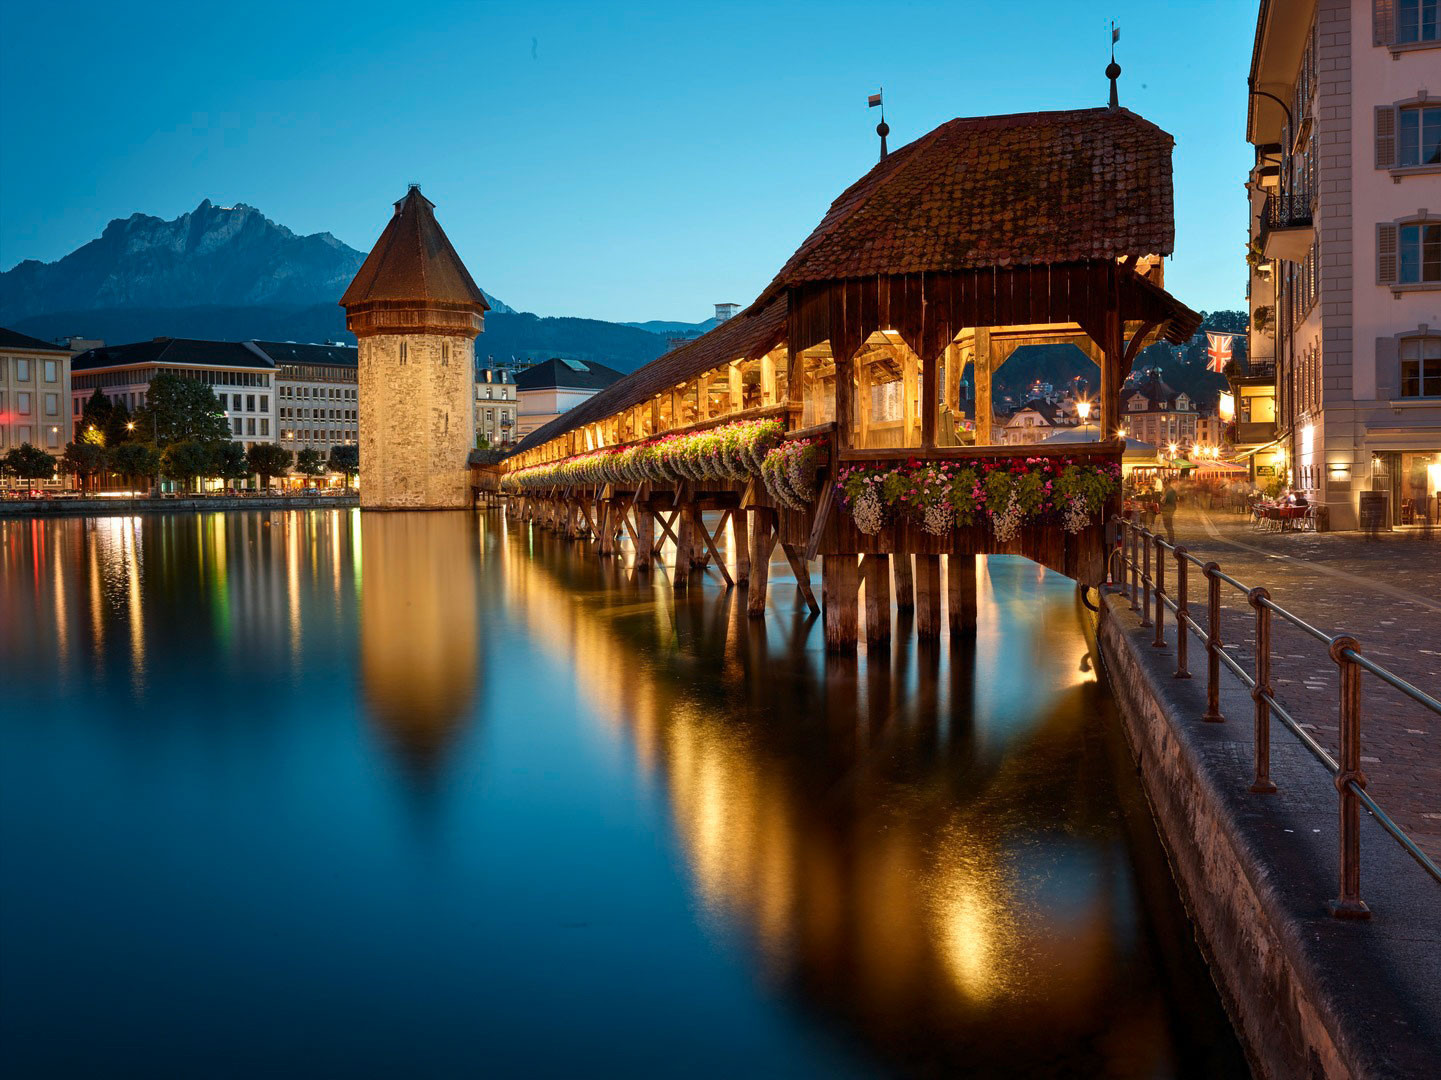 The Winter Universiade in Lucerne will be the first in the Swiss Alps since 1962 ©Lucerne 2021